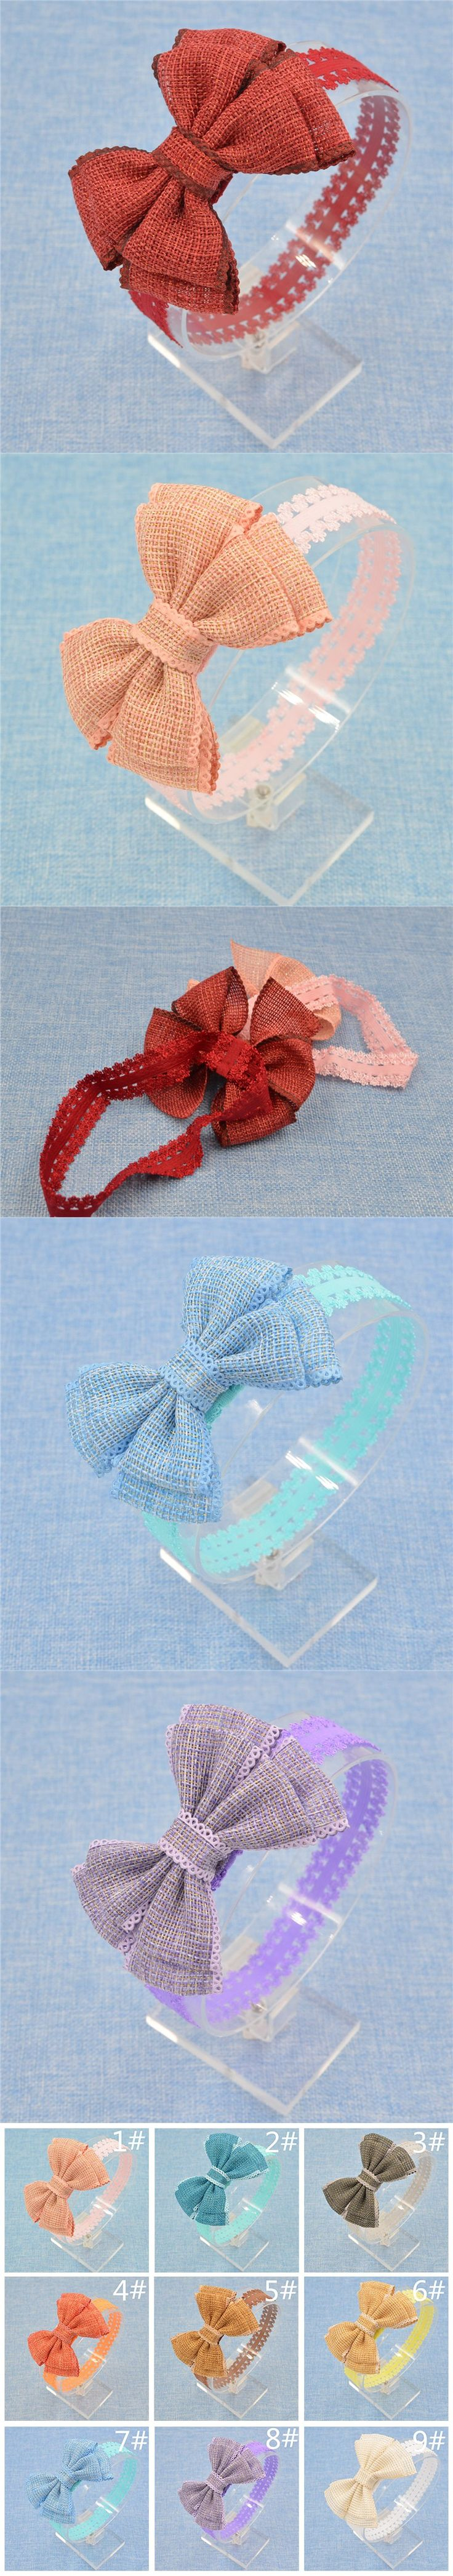 New infant Baby hair bows flower Headband lace band Hand made toddler Hair Band butterfly DIY hair accessories bowknot 10 color $1.5